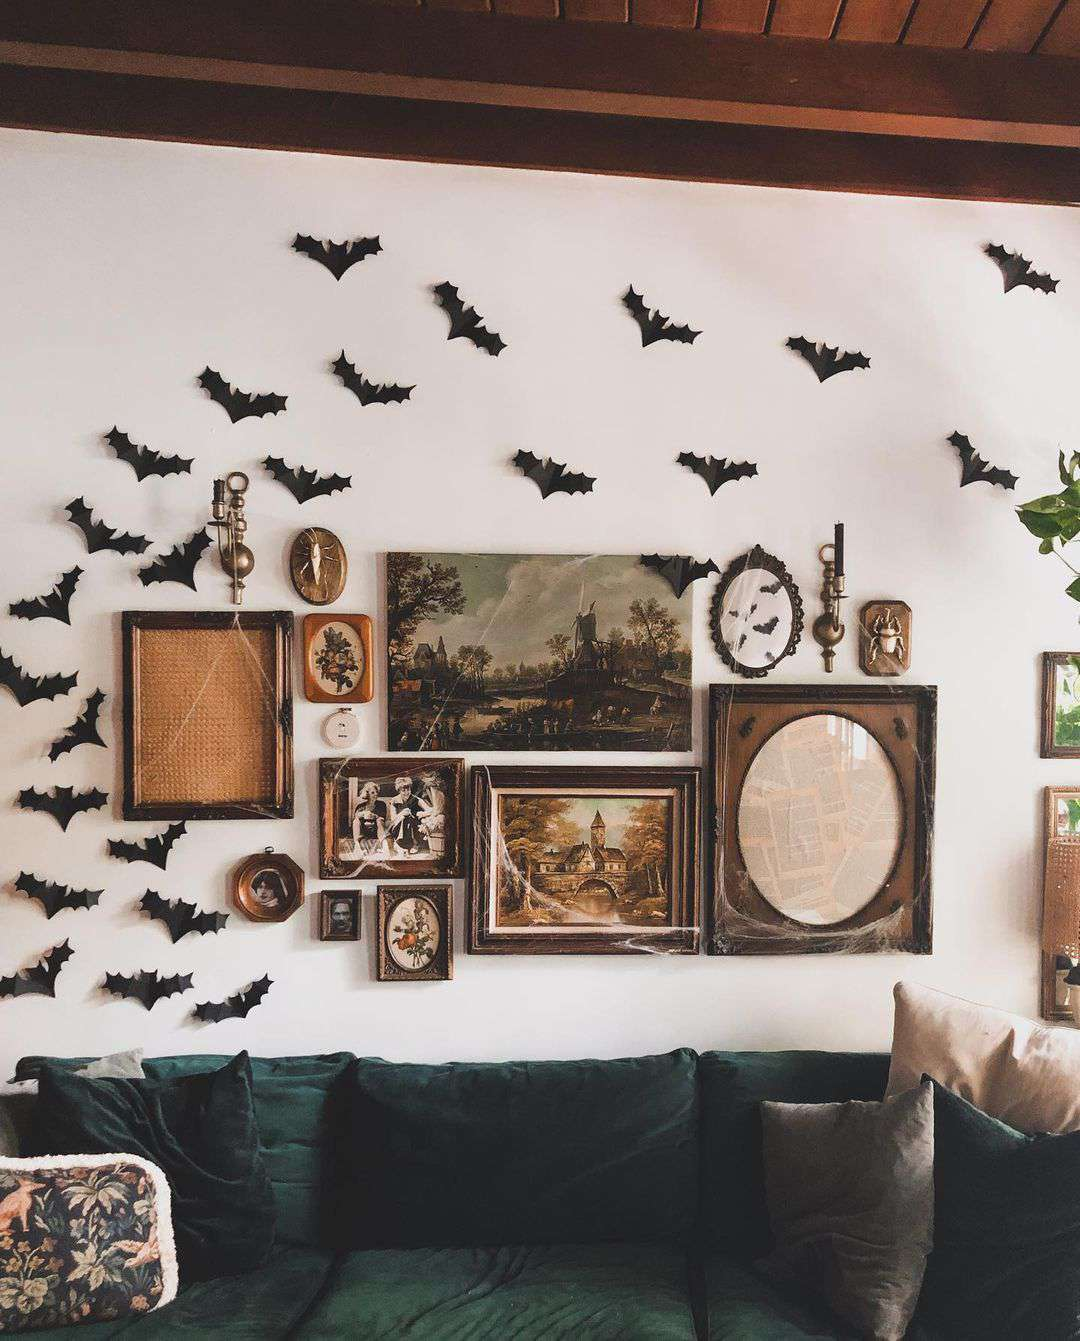 Bats on a gallery wall